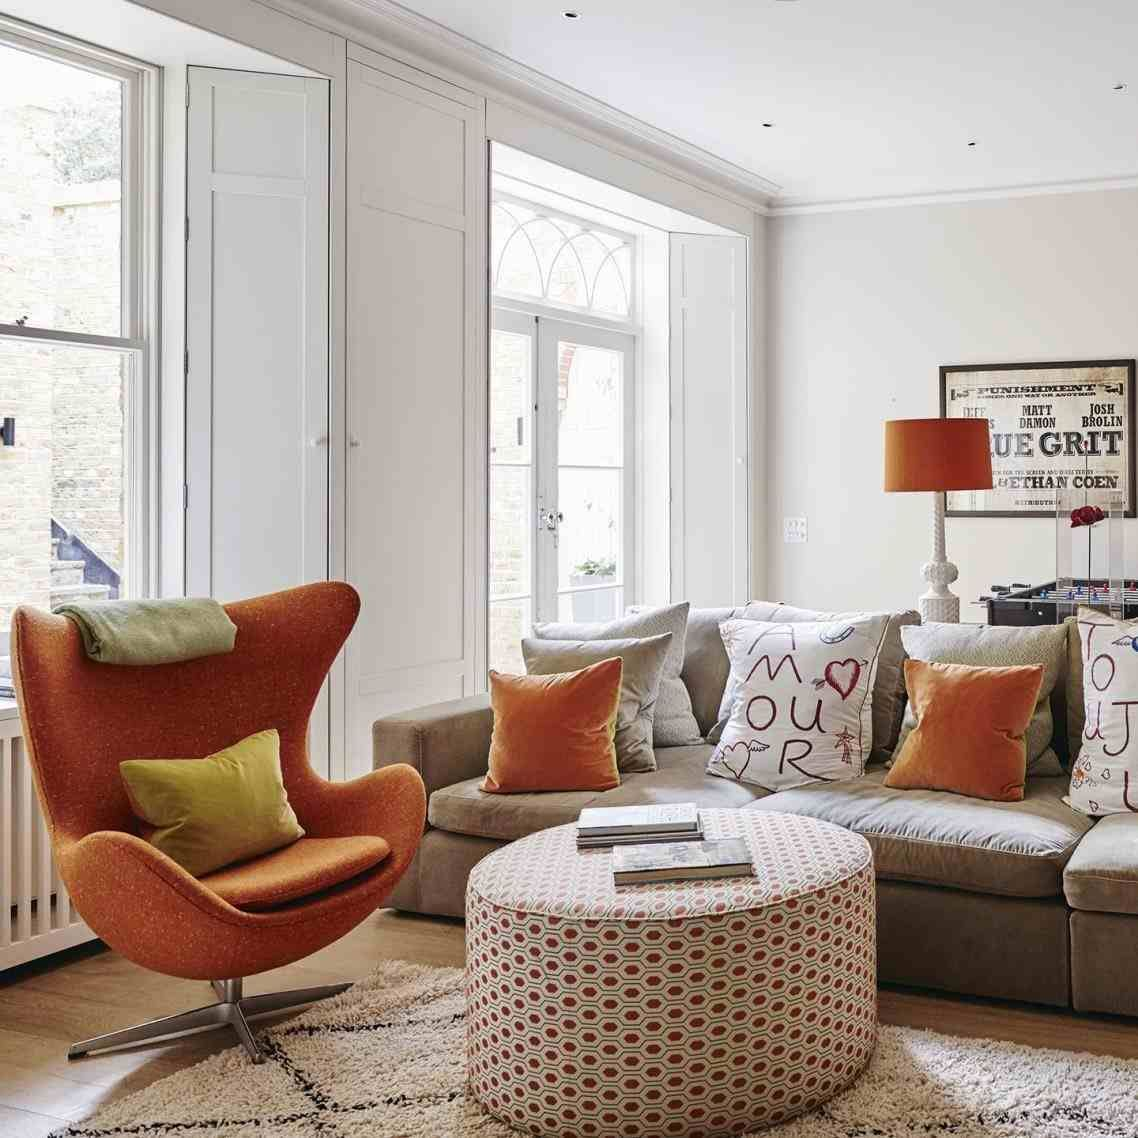 New Post wall colour combination for small living room visit ...